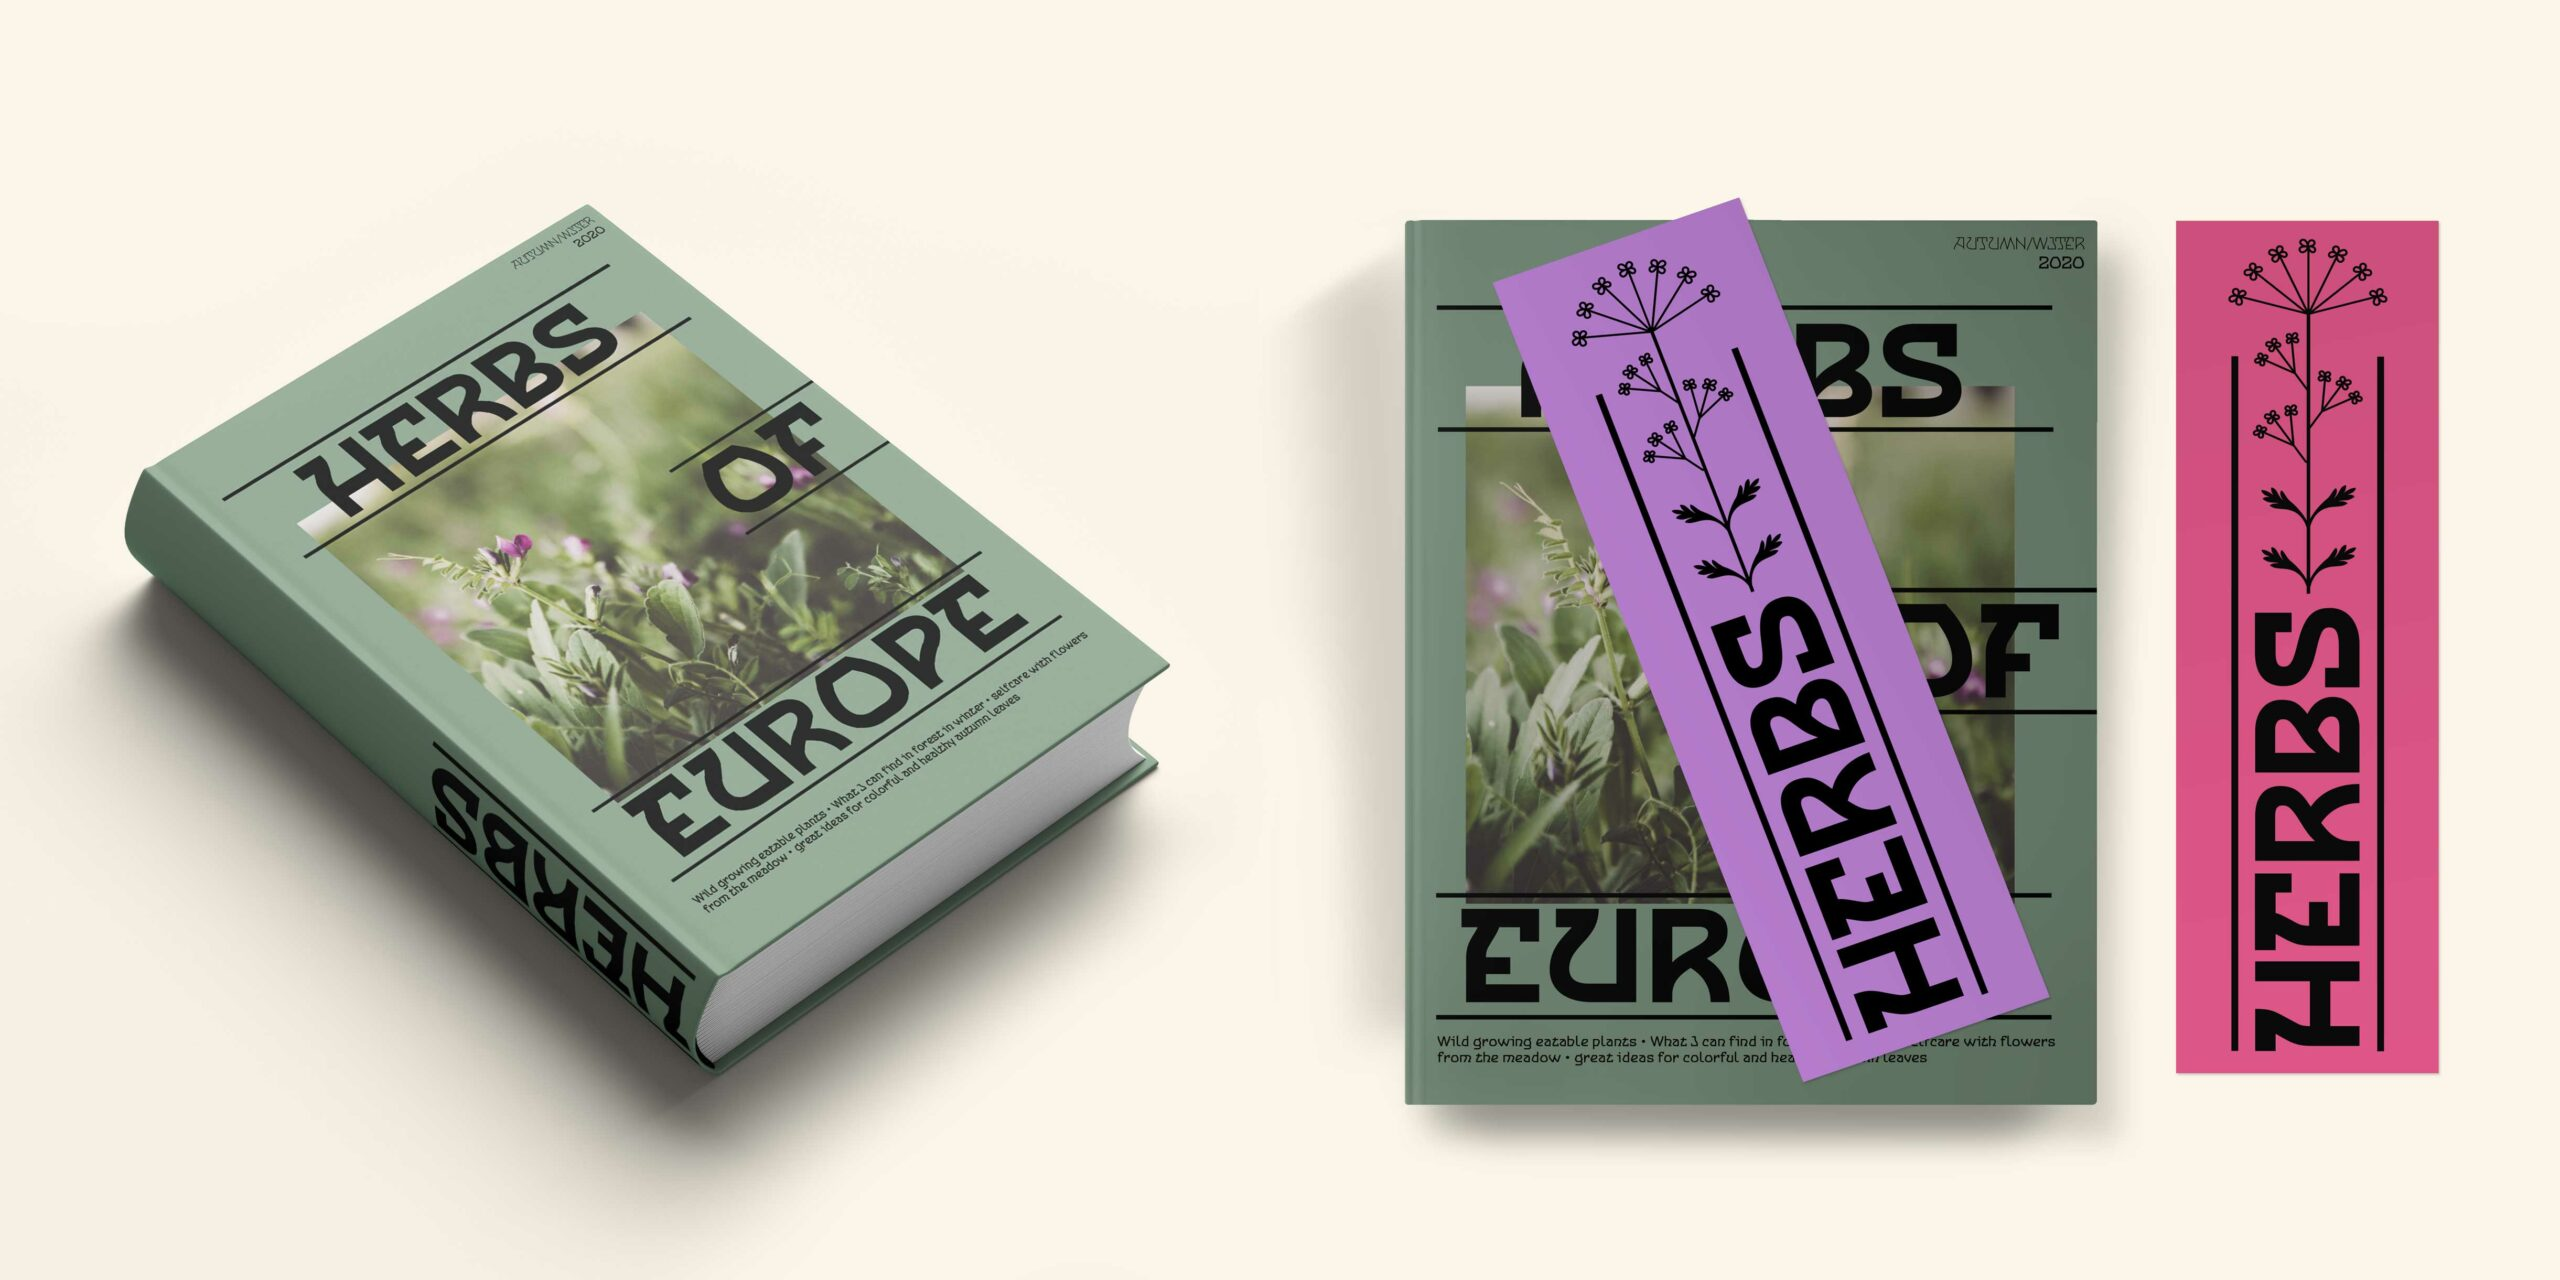 Cnabel font book herbs of europe